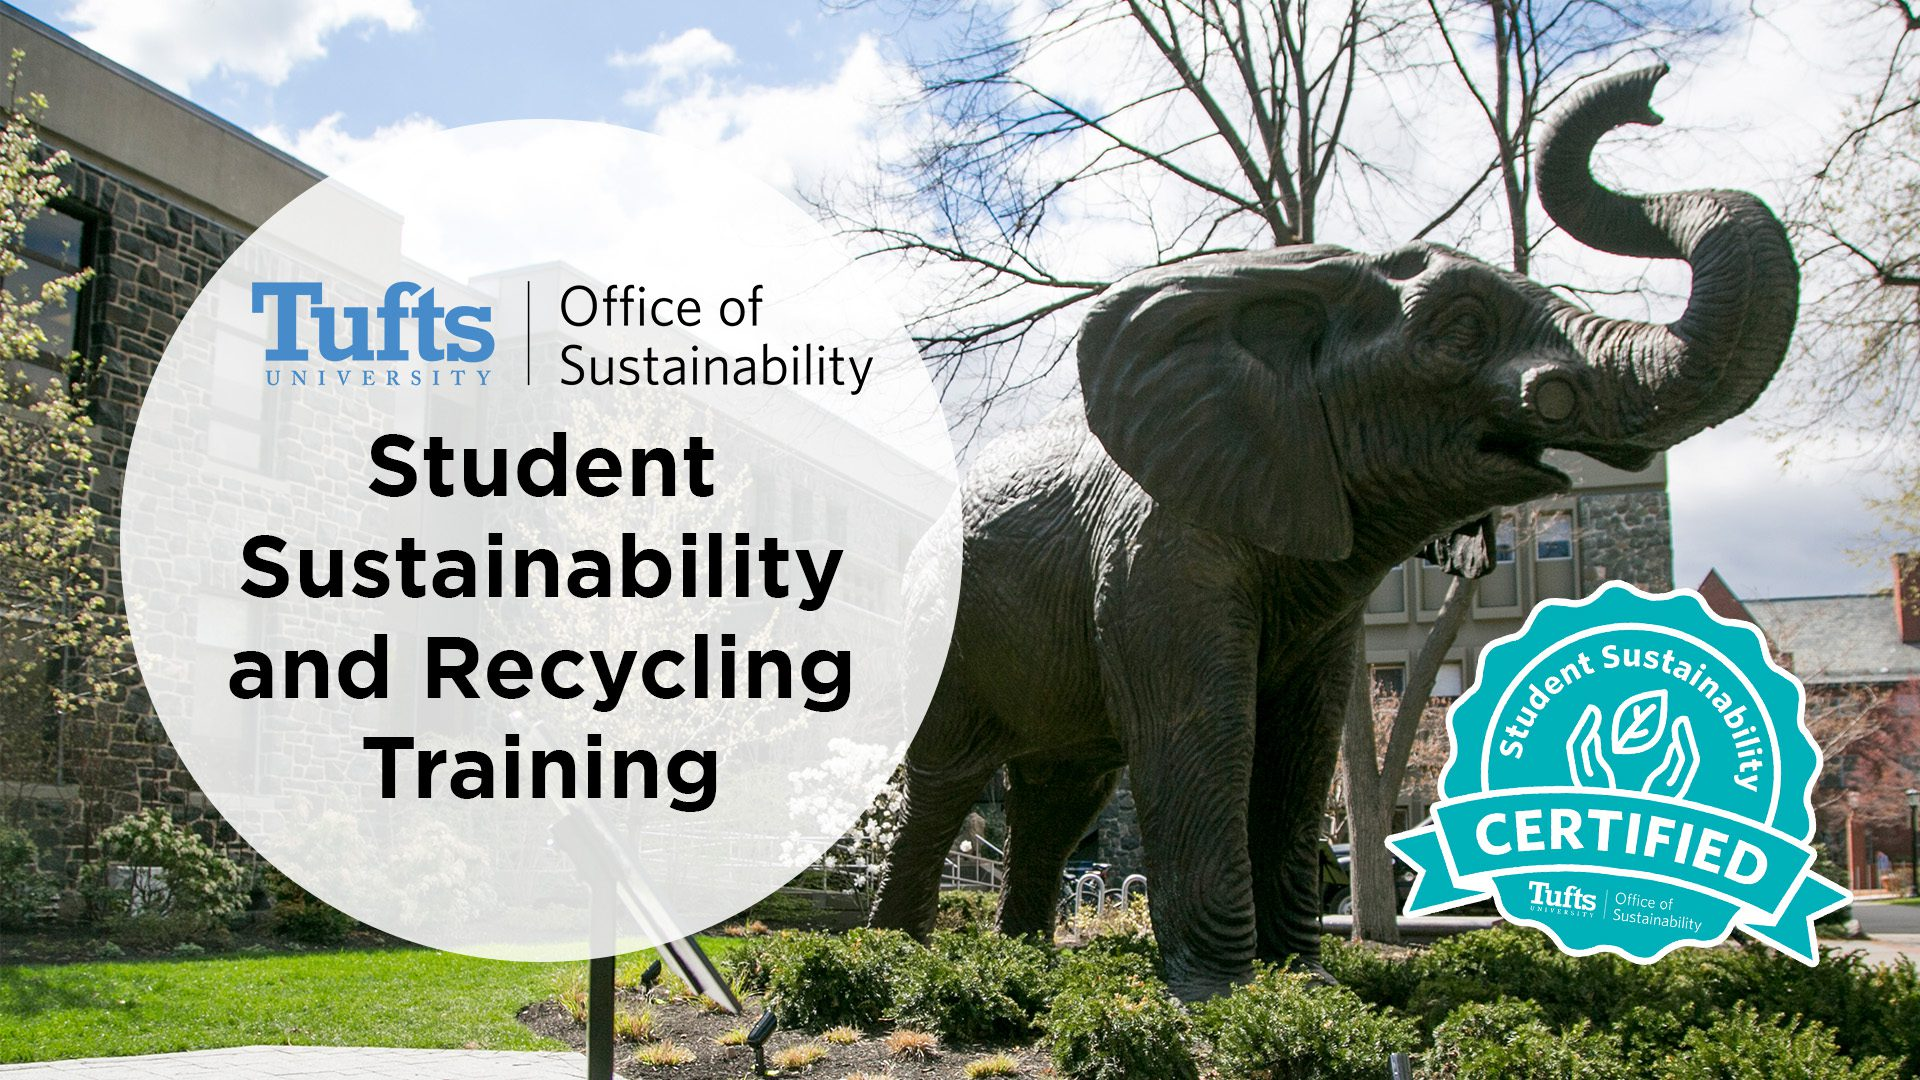 [NEW] Student Sustainability and Recycling Trainings